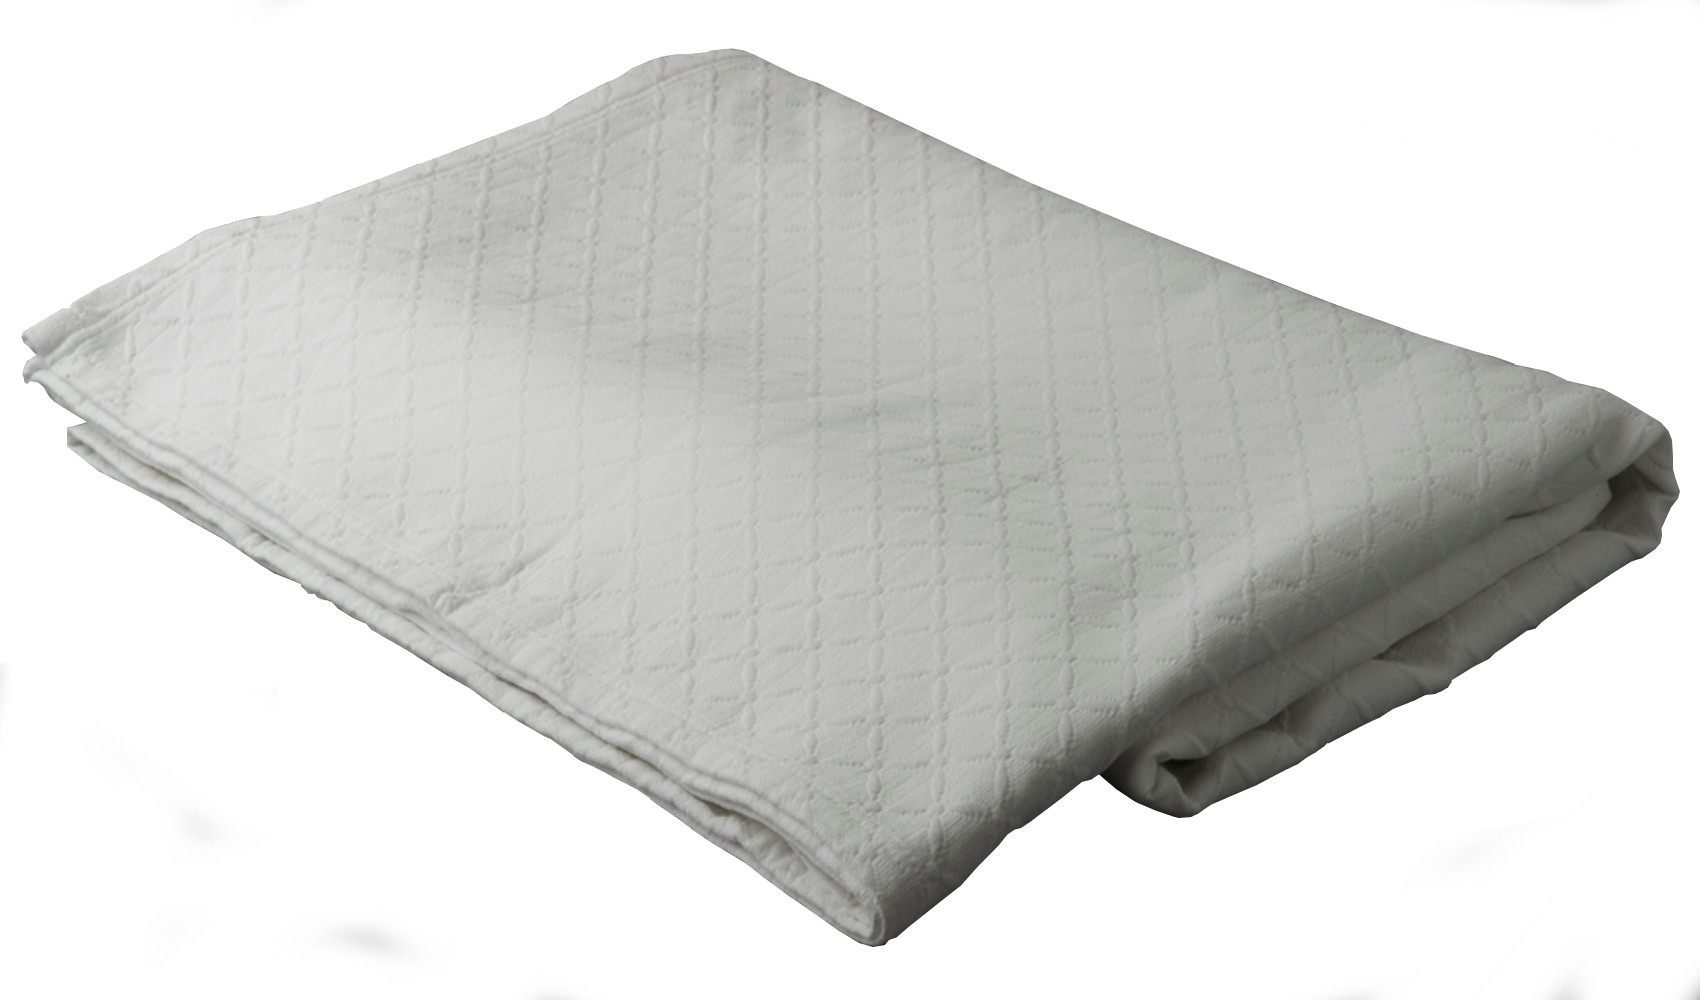 Bedspread designs texture - Bedspread Heavyweight Cotton Rich Neutral Textured Waffle Pattern